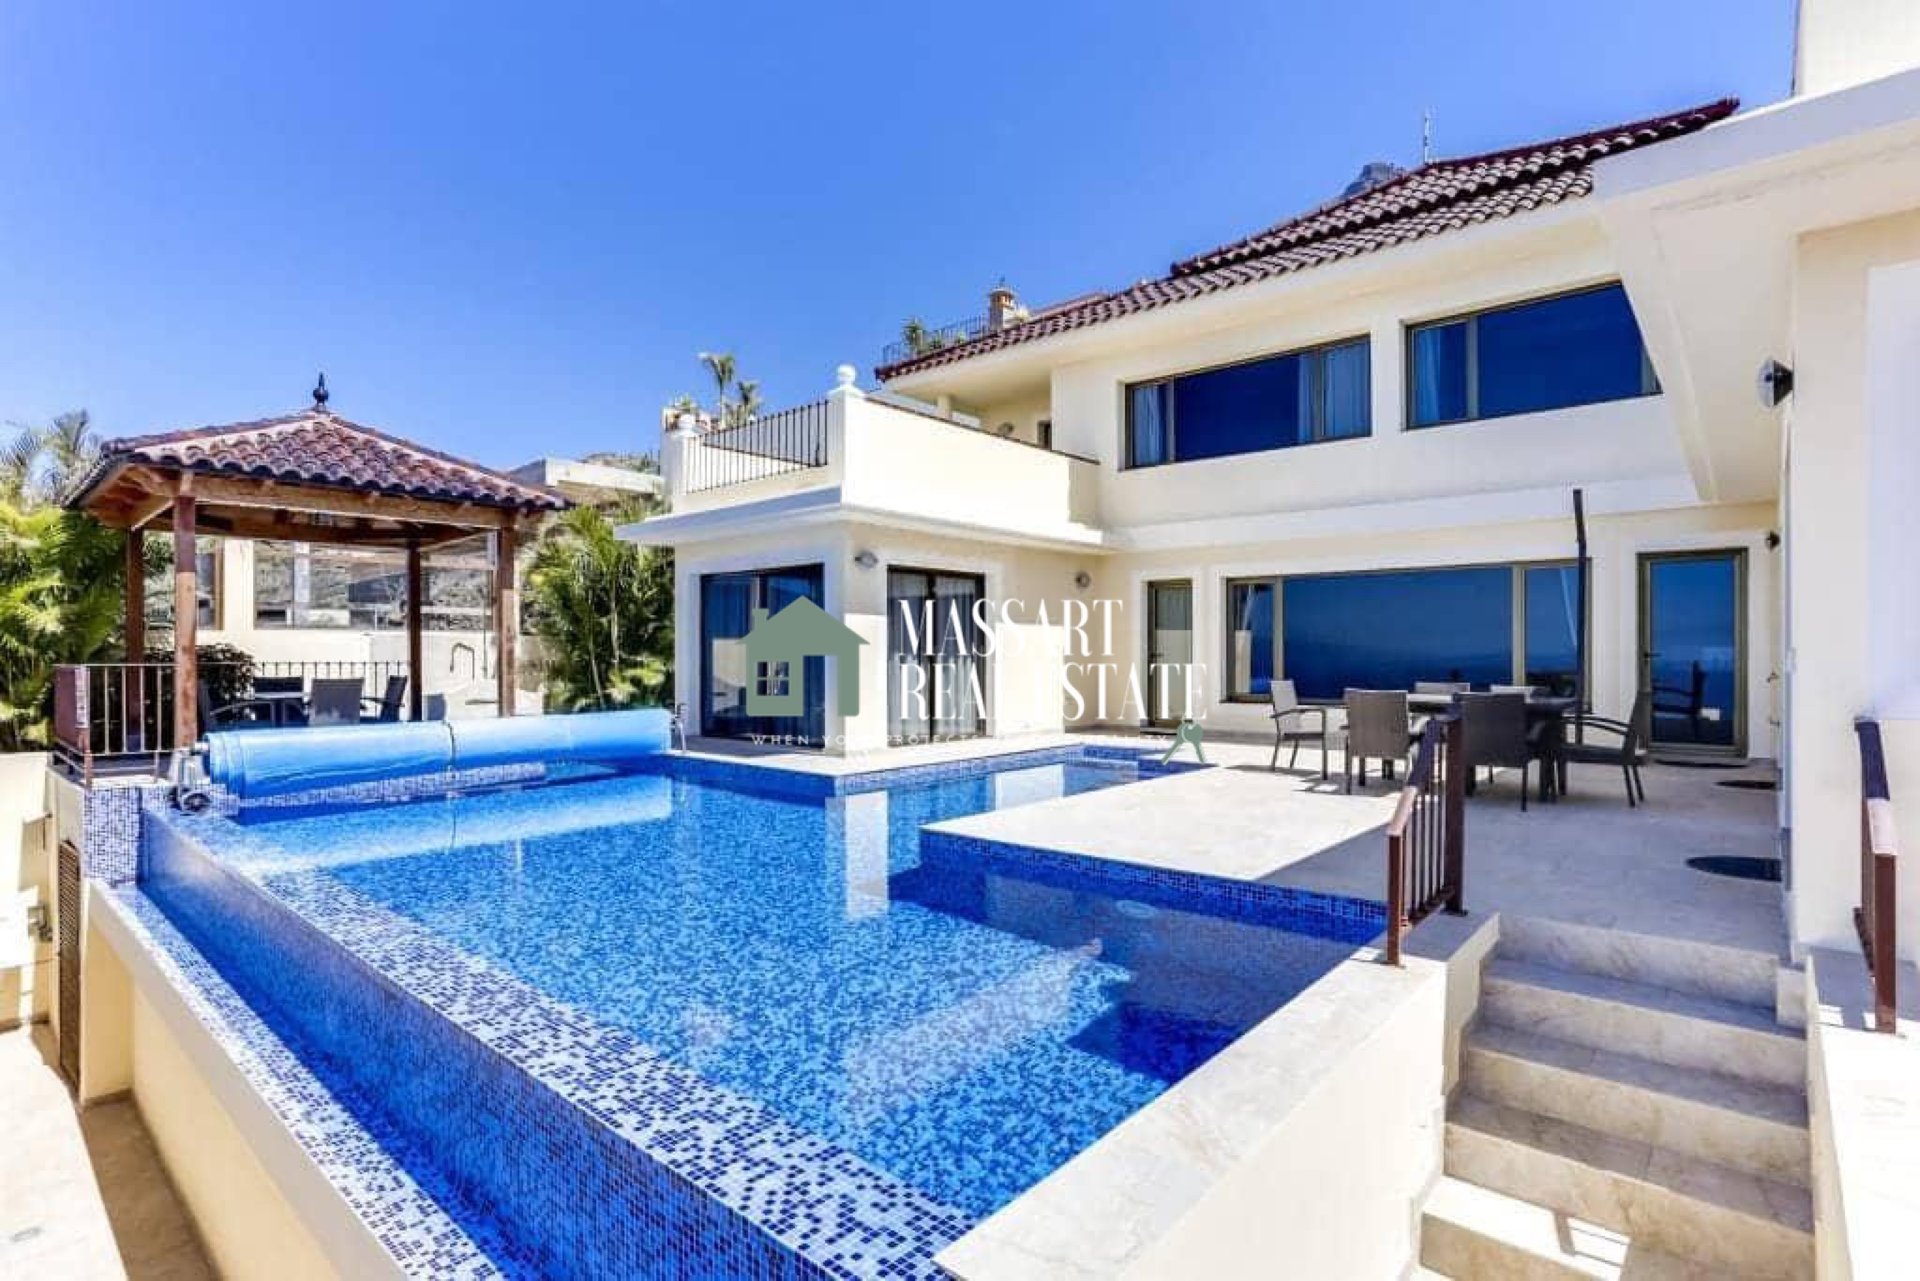 Luxury villa for sale in the popular area of Roque del Conde (Adeje) distributed in an area of 500 m2.